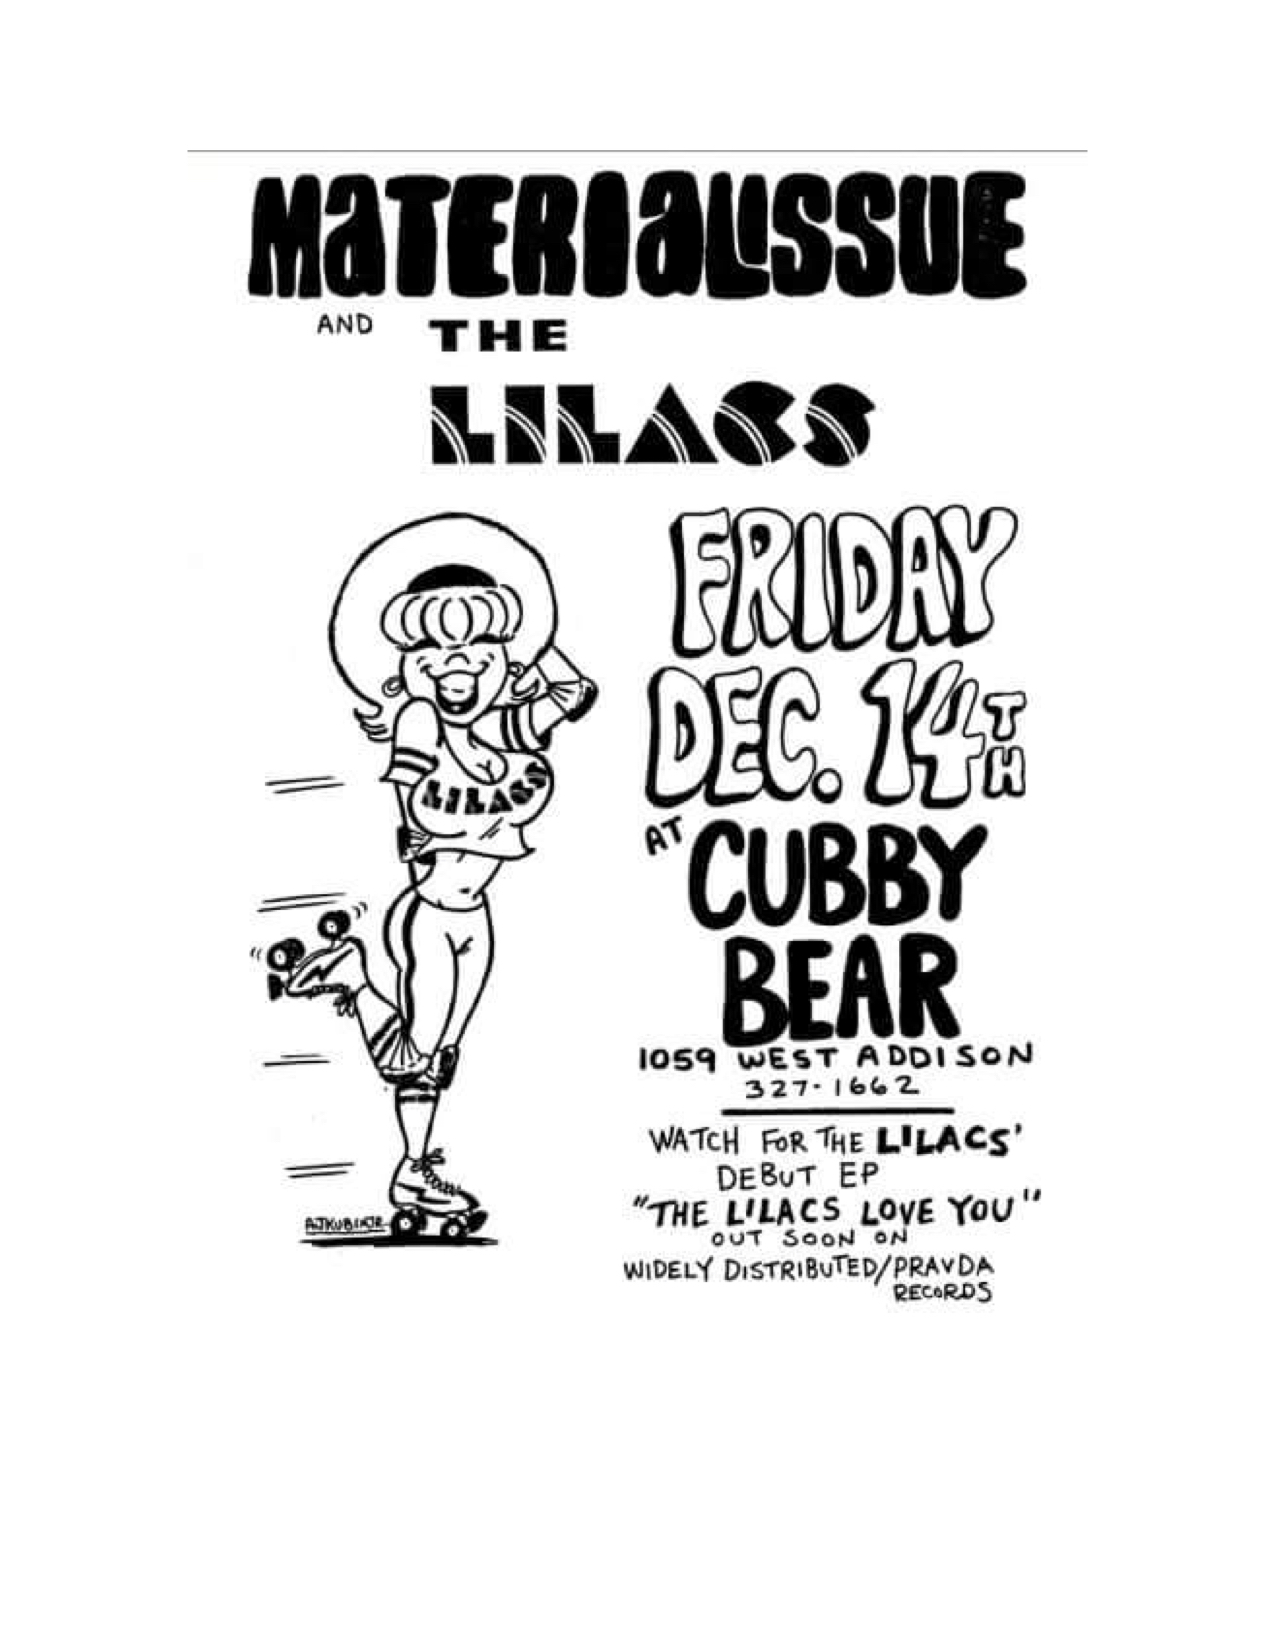 The Lilacs Poster 4 (Material Issue Cubby Bear).jpg